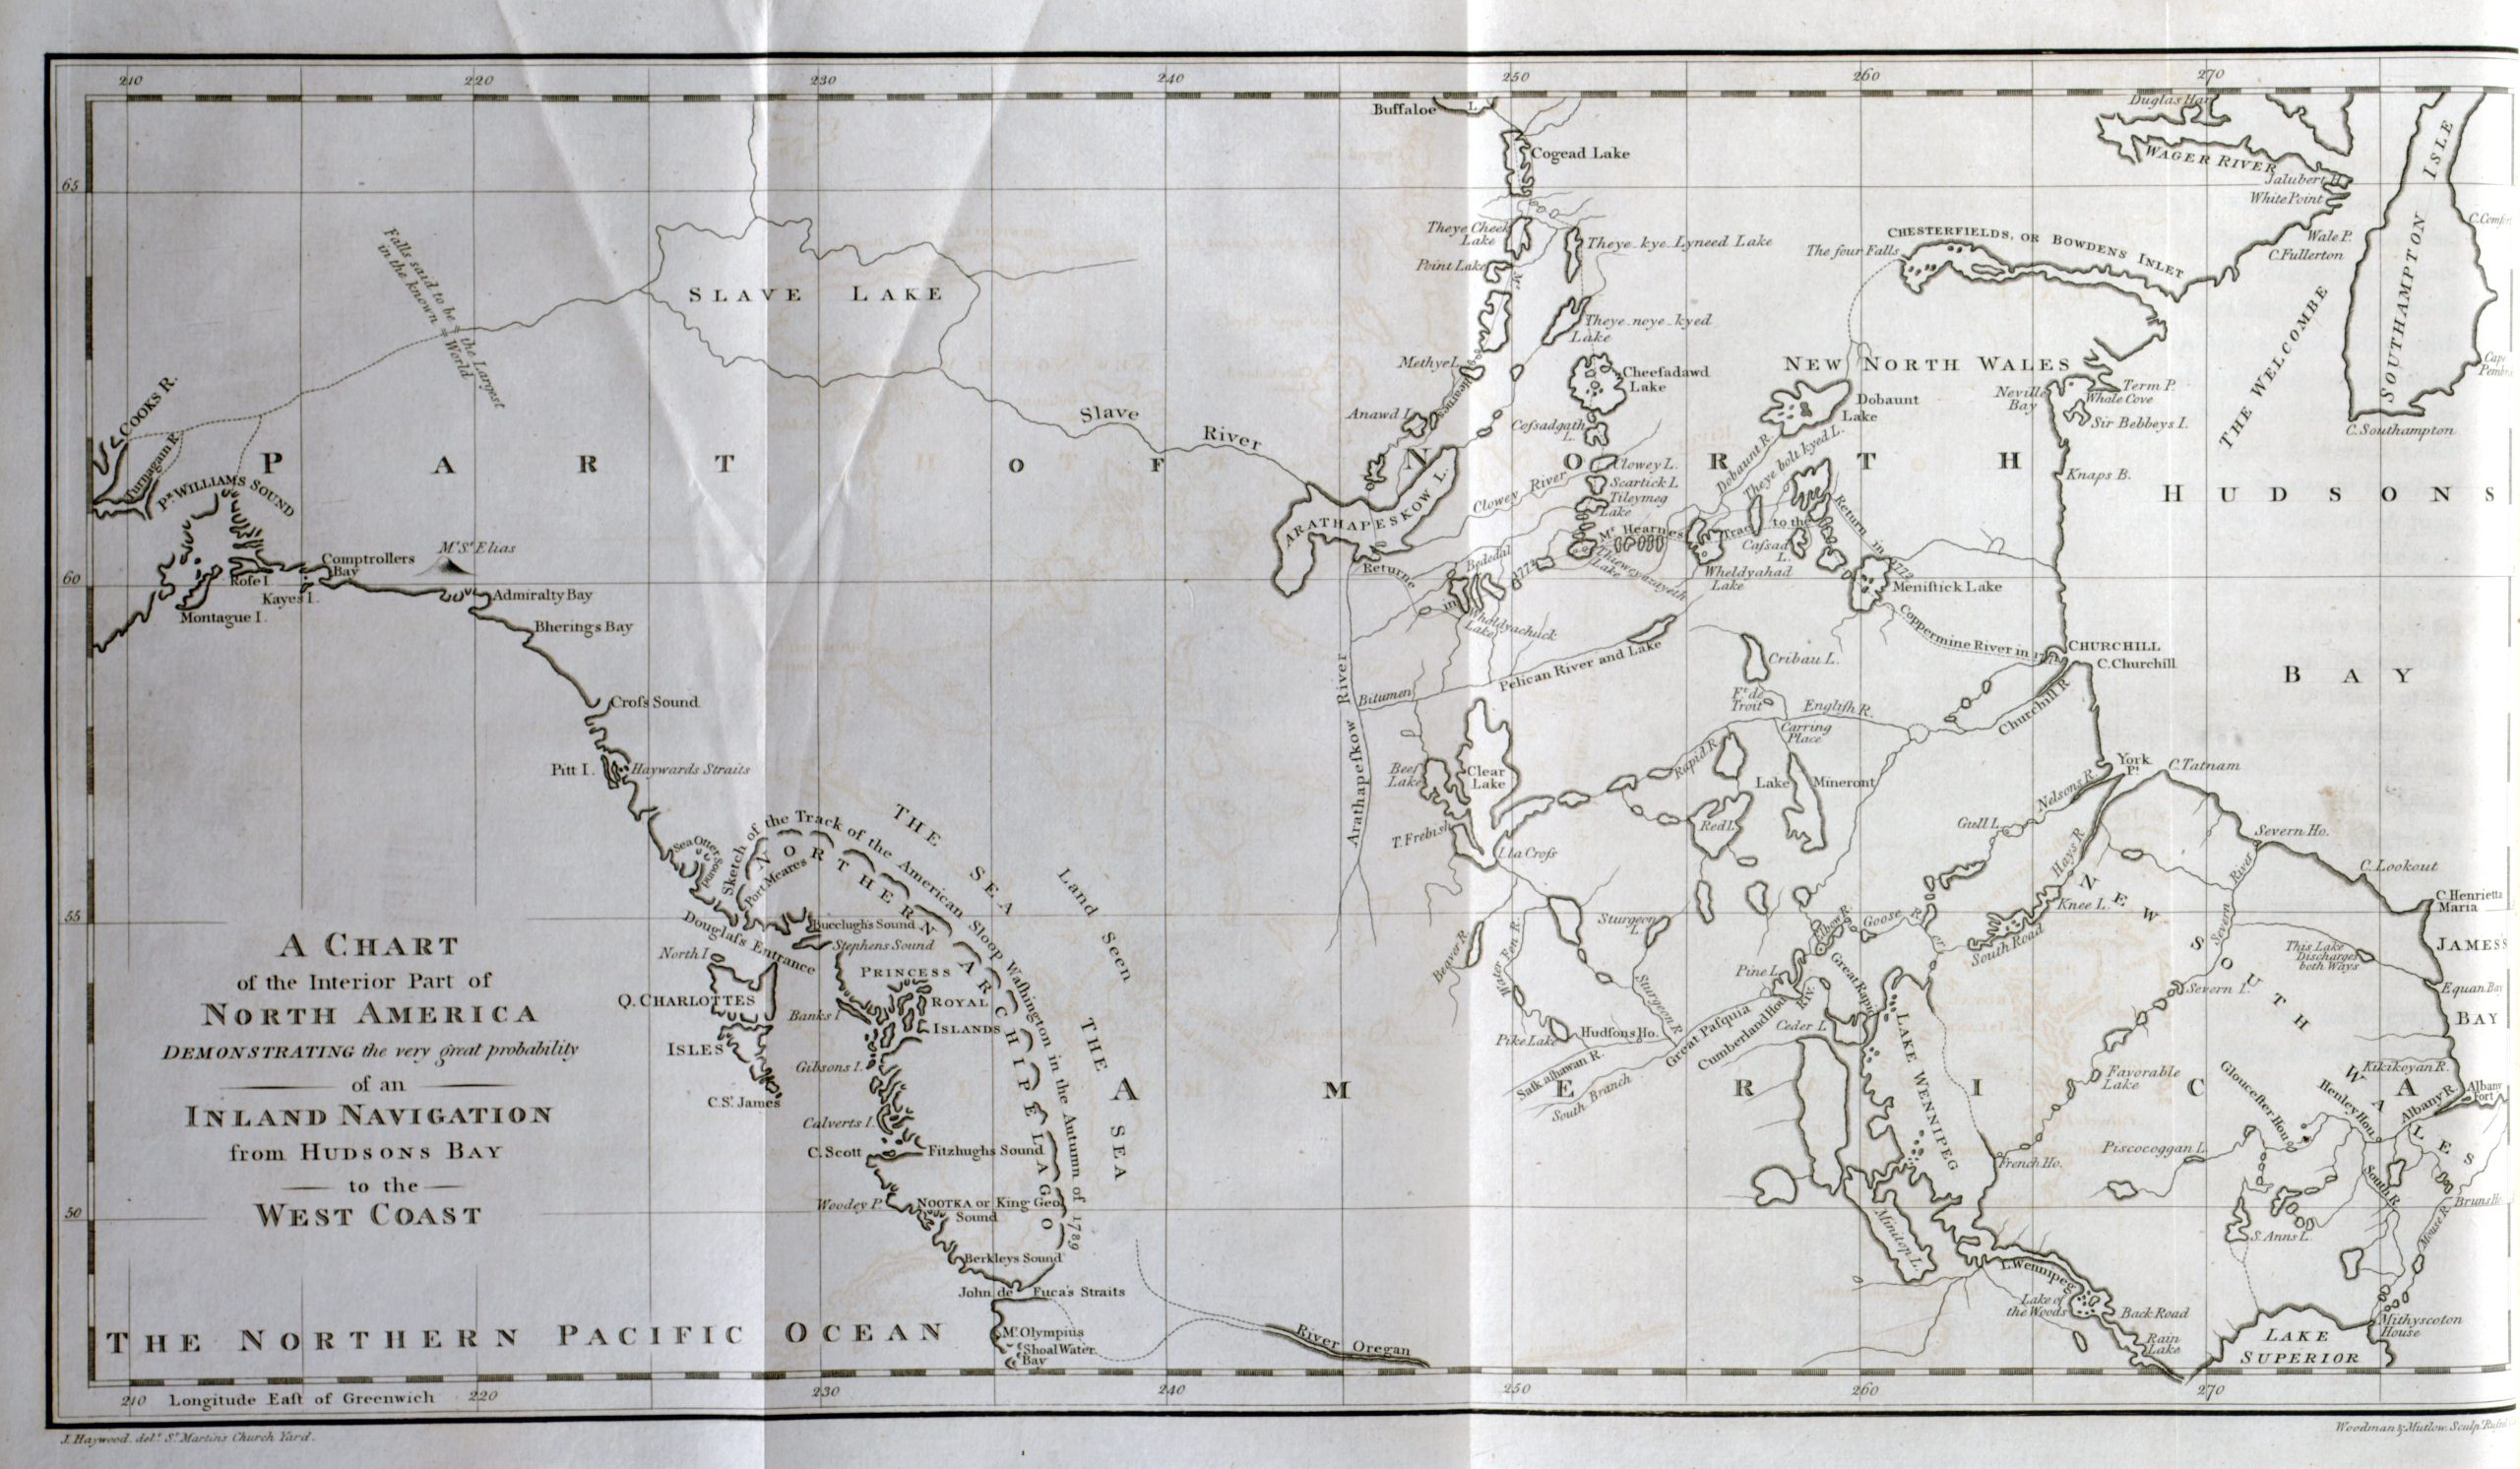 """A white map with black print. At the northernmost point """"Buffaloe"""" and """"Cogead Lake"""" are labeled, and the map stretches down to show the features labeled """"Lake Superior"""" and """"River Oregan."""" Hudson Bay features prominently on the right hand side and details of the Pacific coast are visible down the left."""